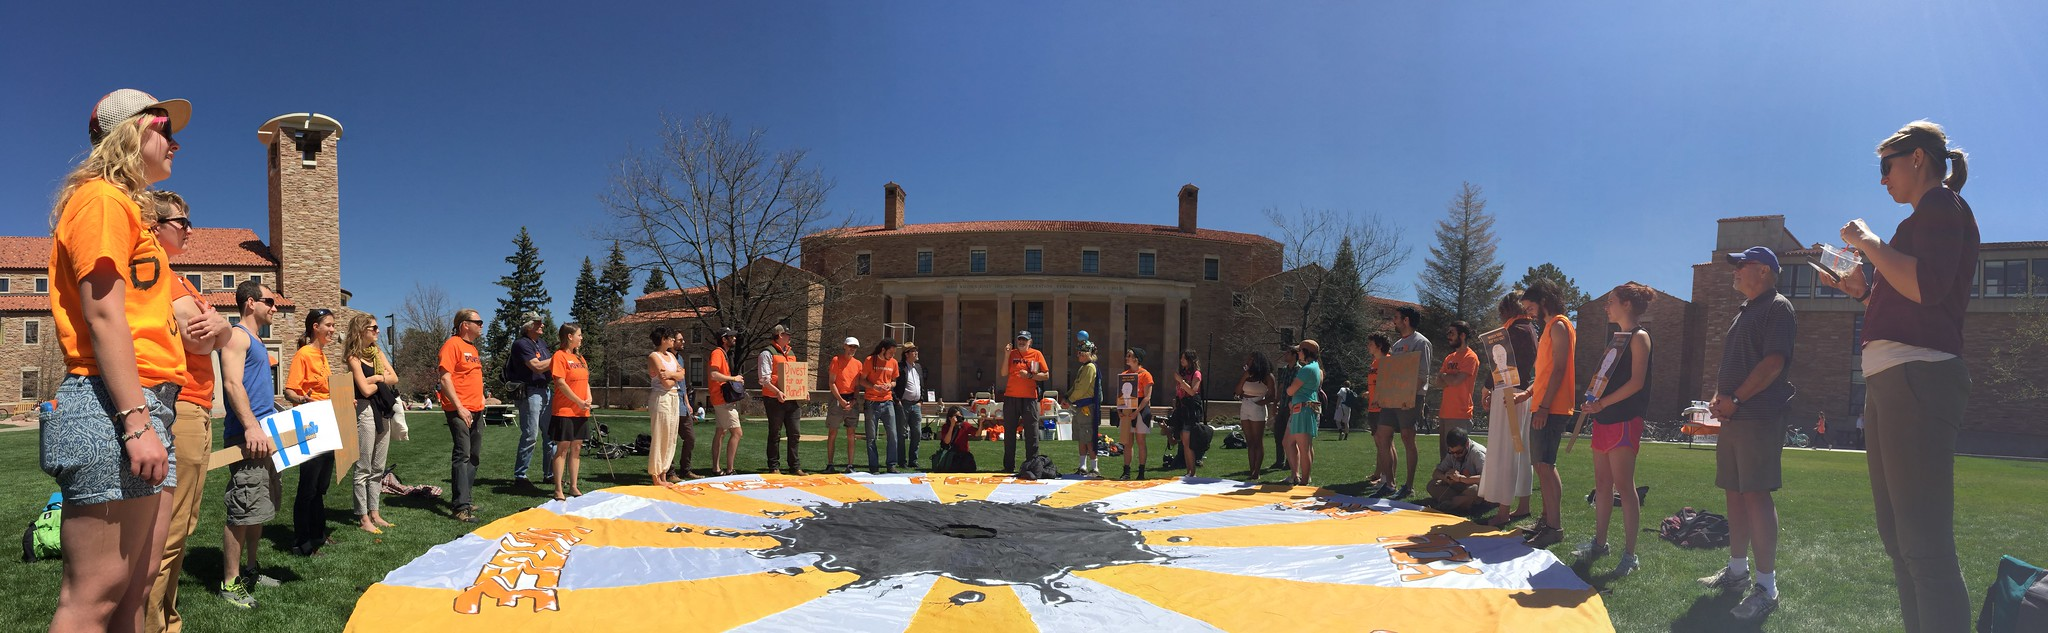 CU Boulder Escalation - April 14th, 2015